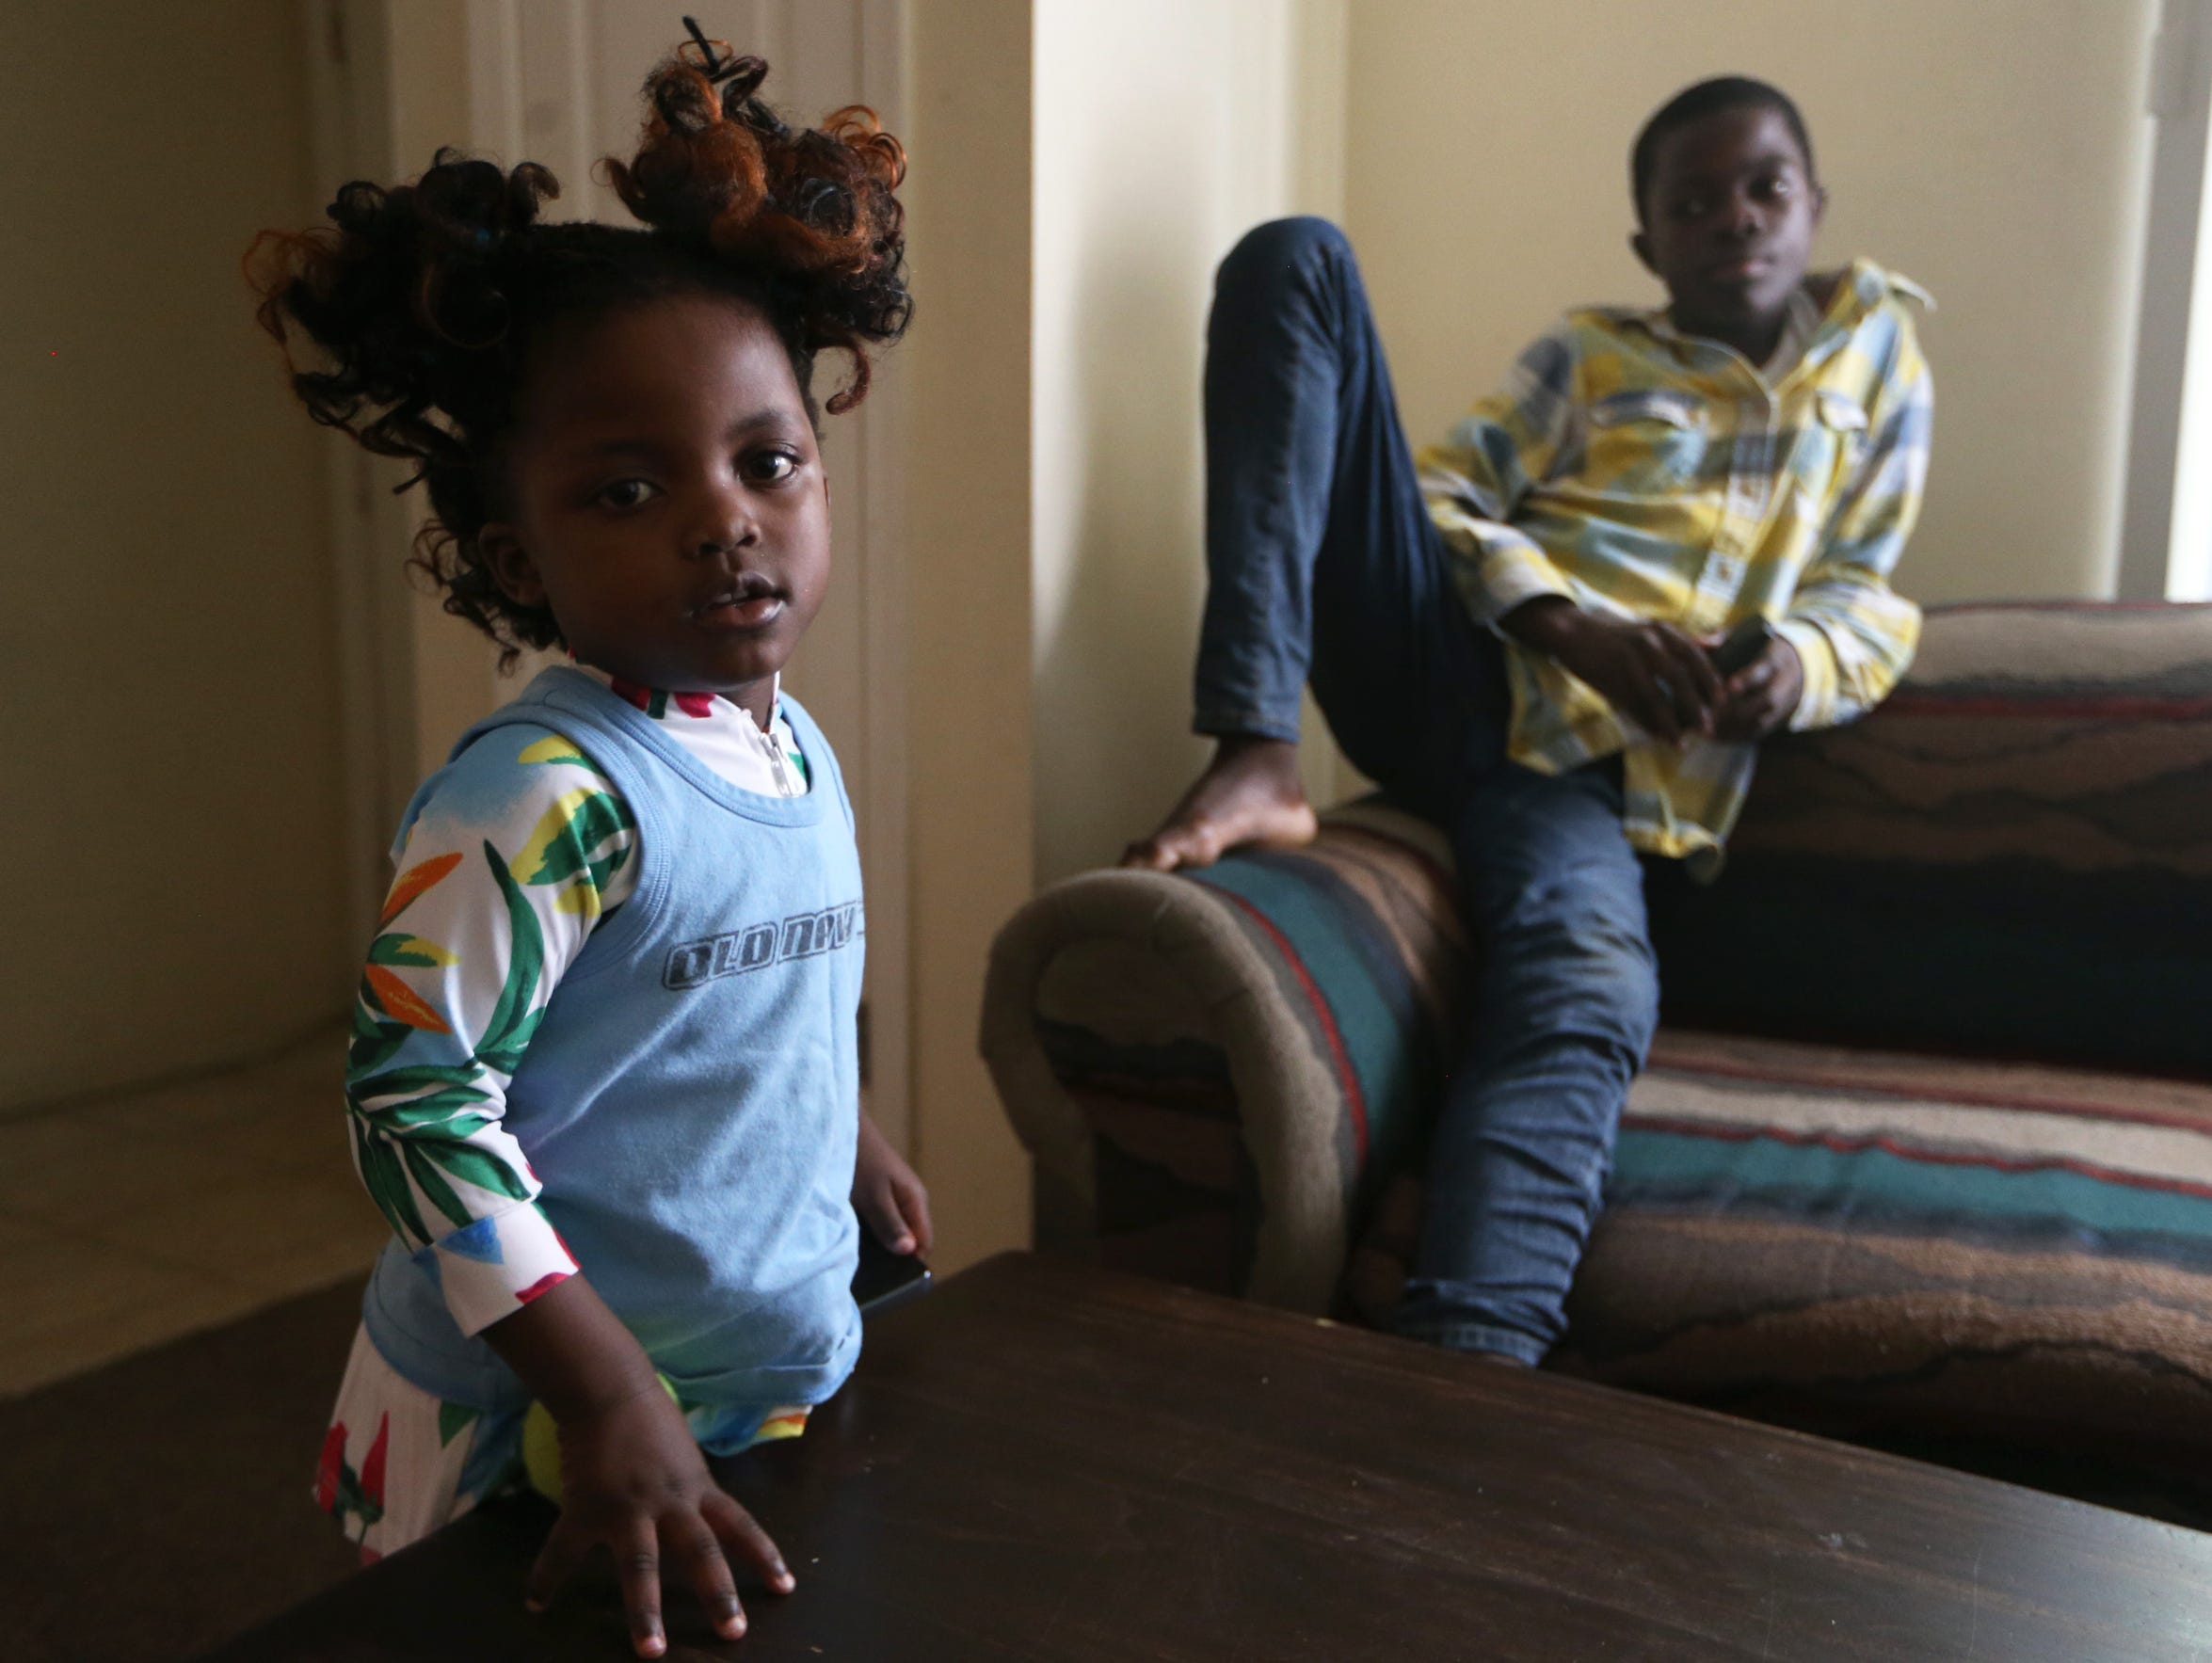 Magi, 4, and James Mambo, 14, in the family's living